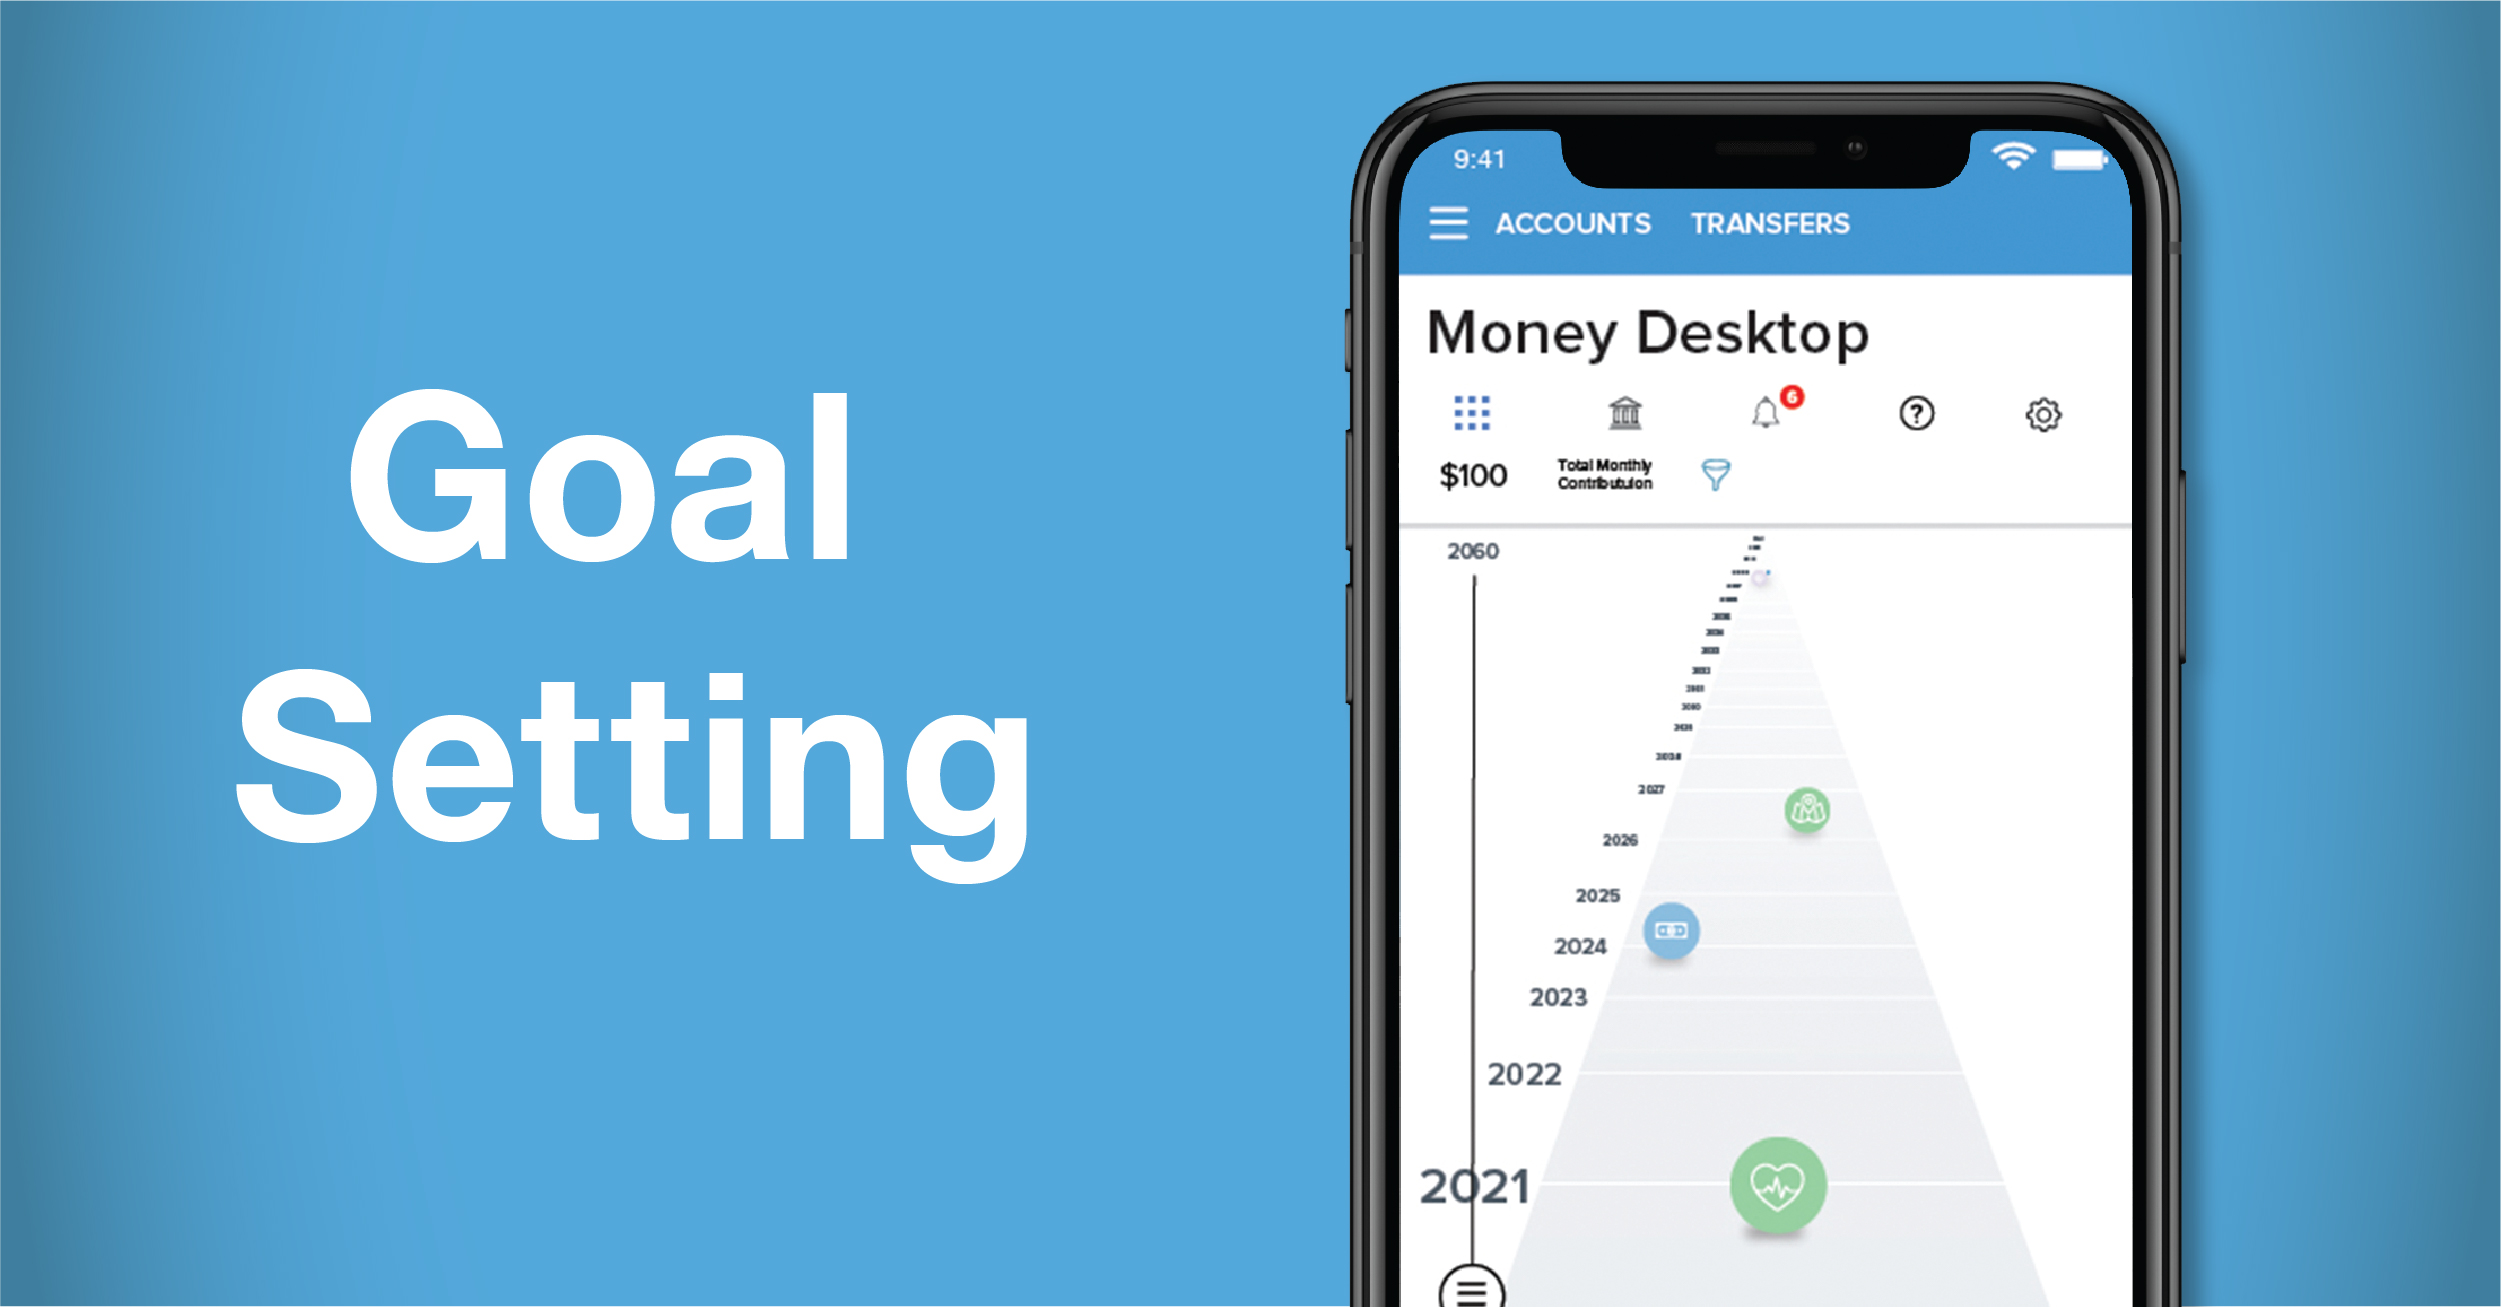 phone screen showing money desktop platform and words goal setting to the left